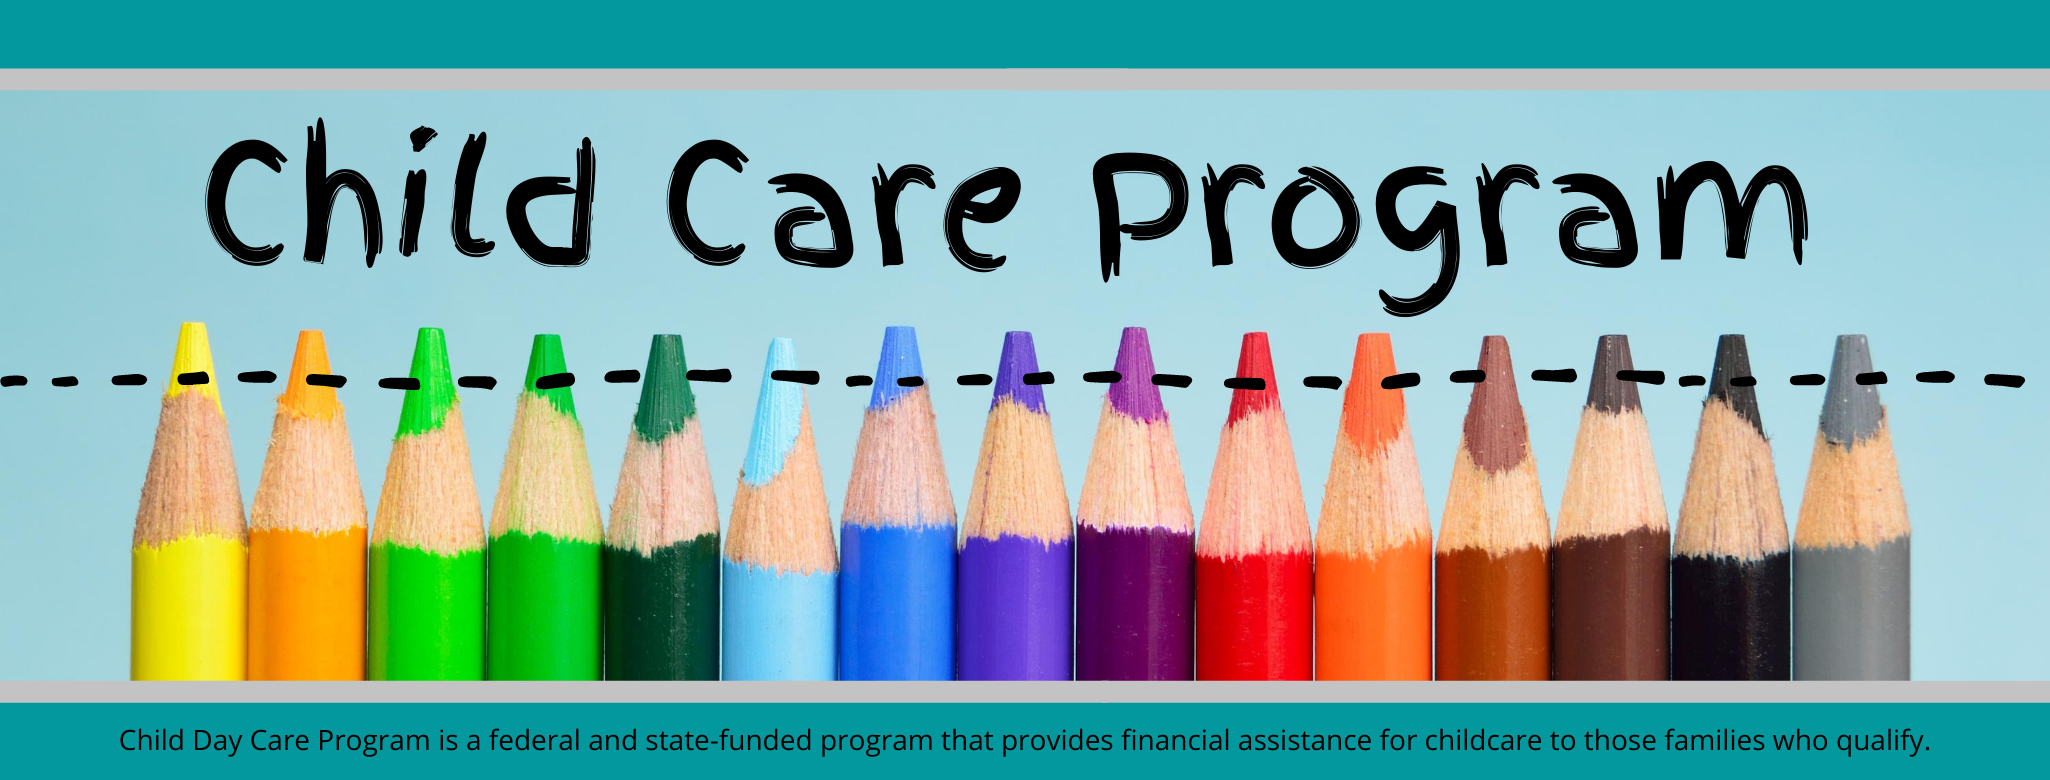 Child Care Program3